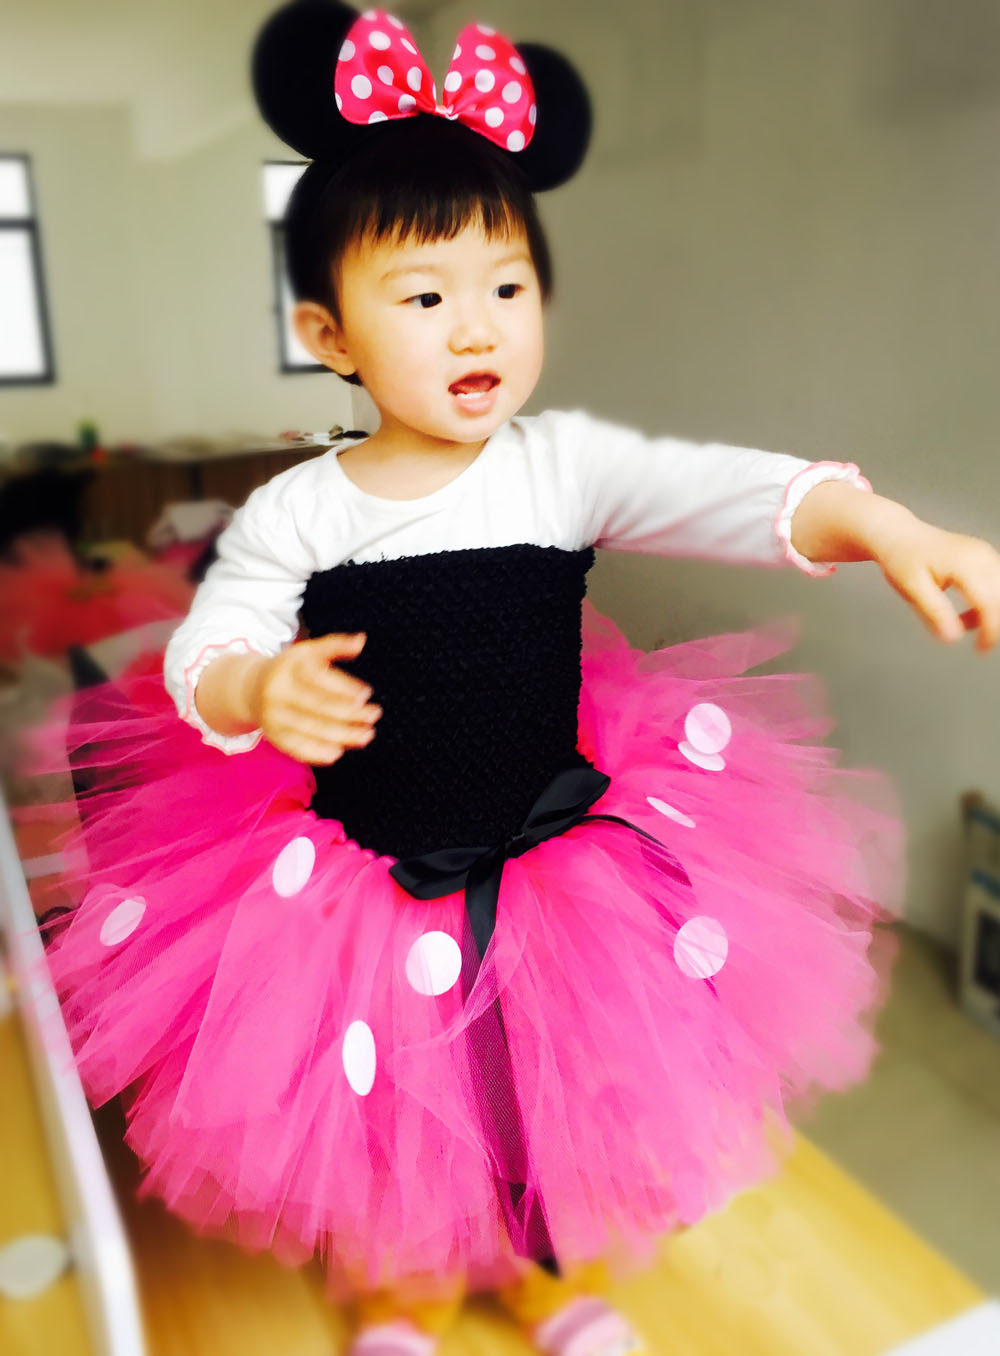 Black Top Rose Red Tulle Tutu Mini Mickey Dress with White Dots Knee Length Pretty Girl Dress for Halloween Outfits Kids Clothes in Dresses from Mother Kids